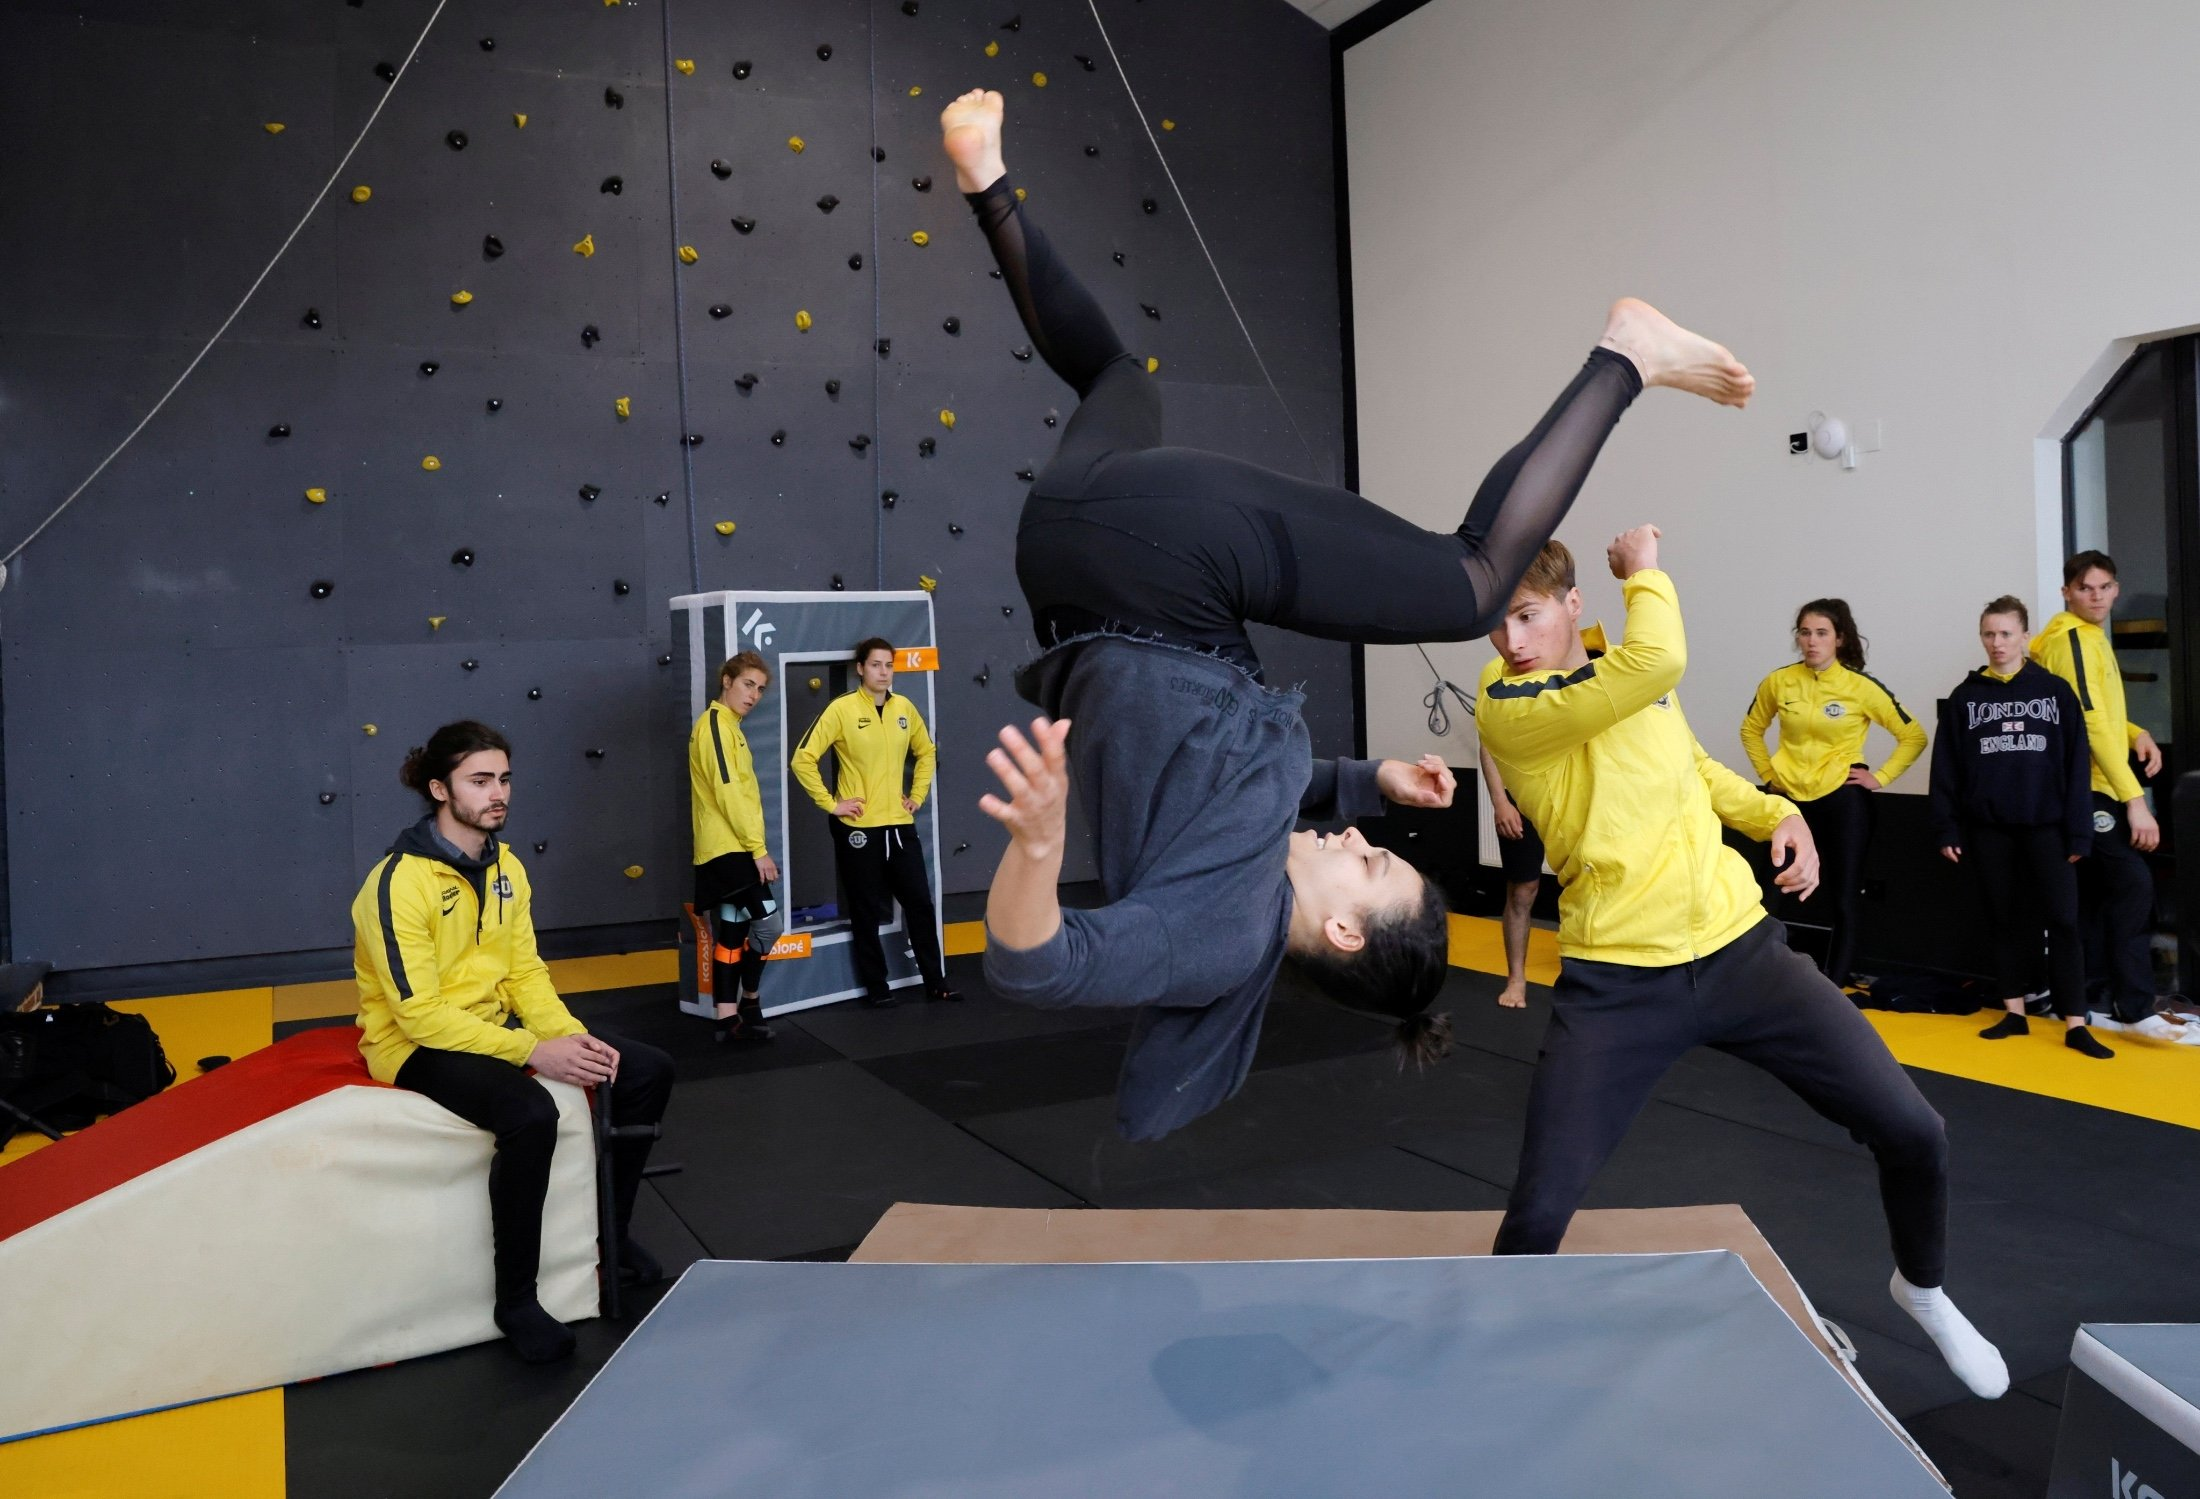 Student Birgui Tall attends a training session at France's Campus Univers Cascade (CUC), a training ground for stuntpeople, in Le Cateau-Cambresis, France, May 4, 2021. (Reuters Photo)